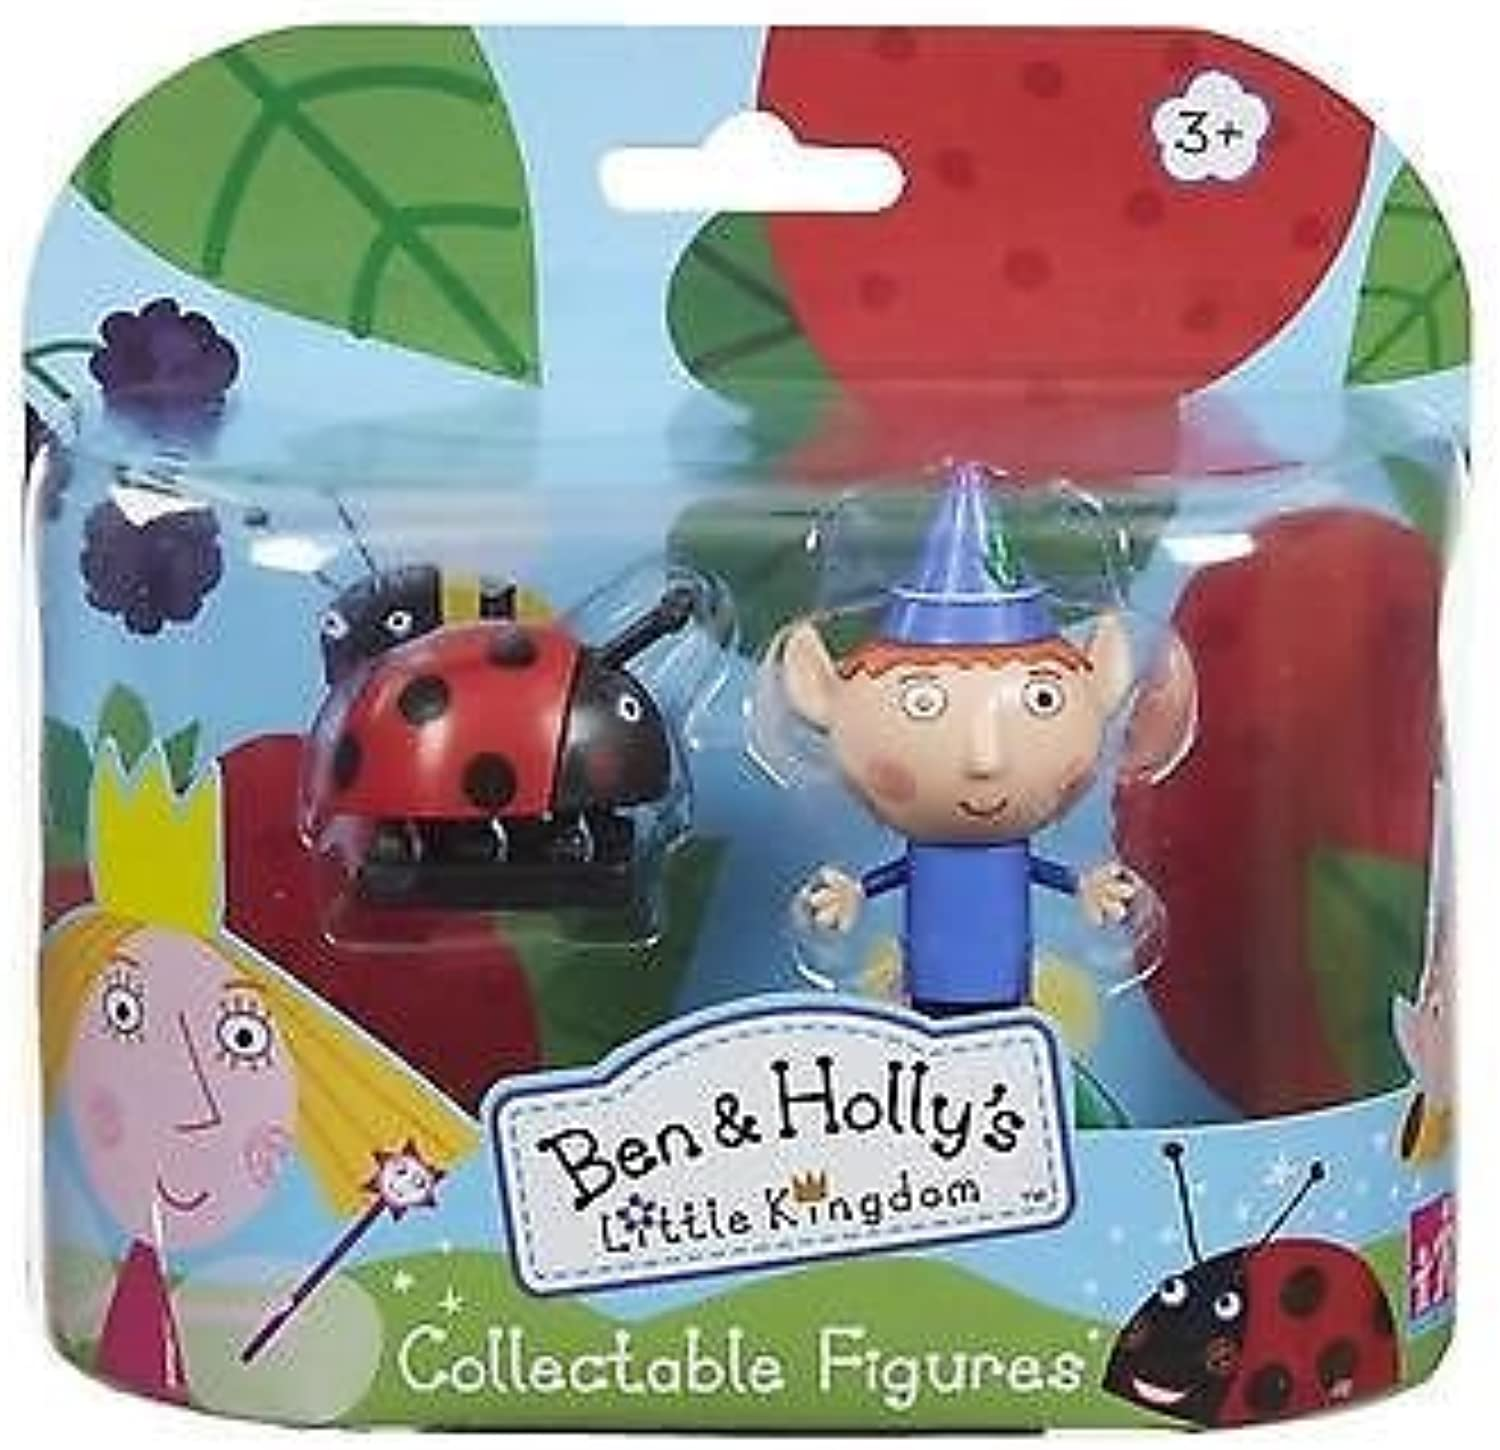 Ben & Holly's Little Kingdom Collectable Figures BEN & GASTON (Dispatched From UK)